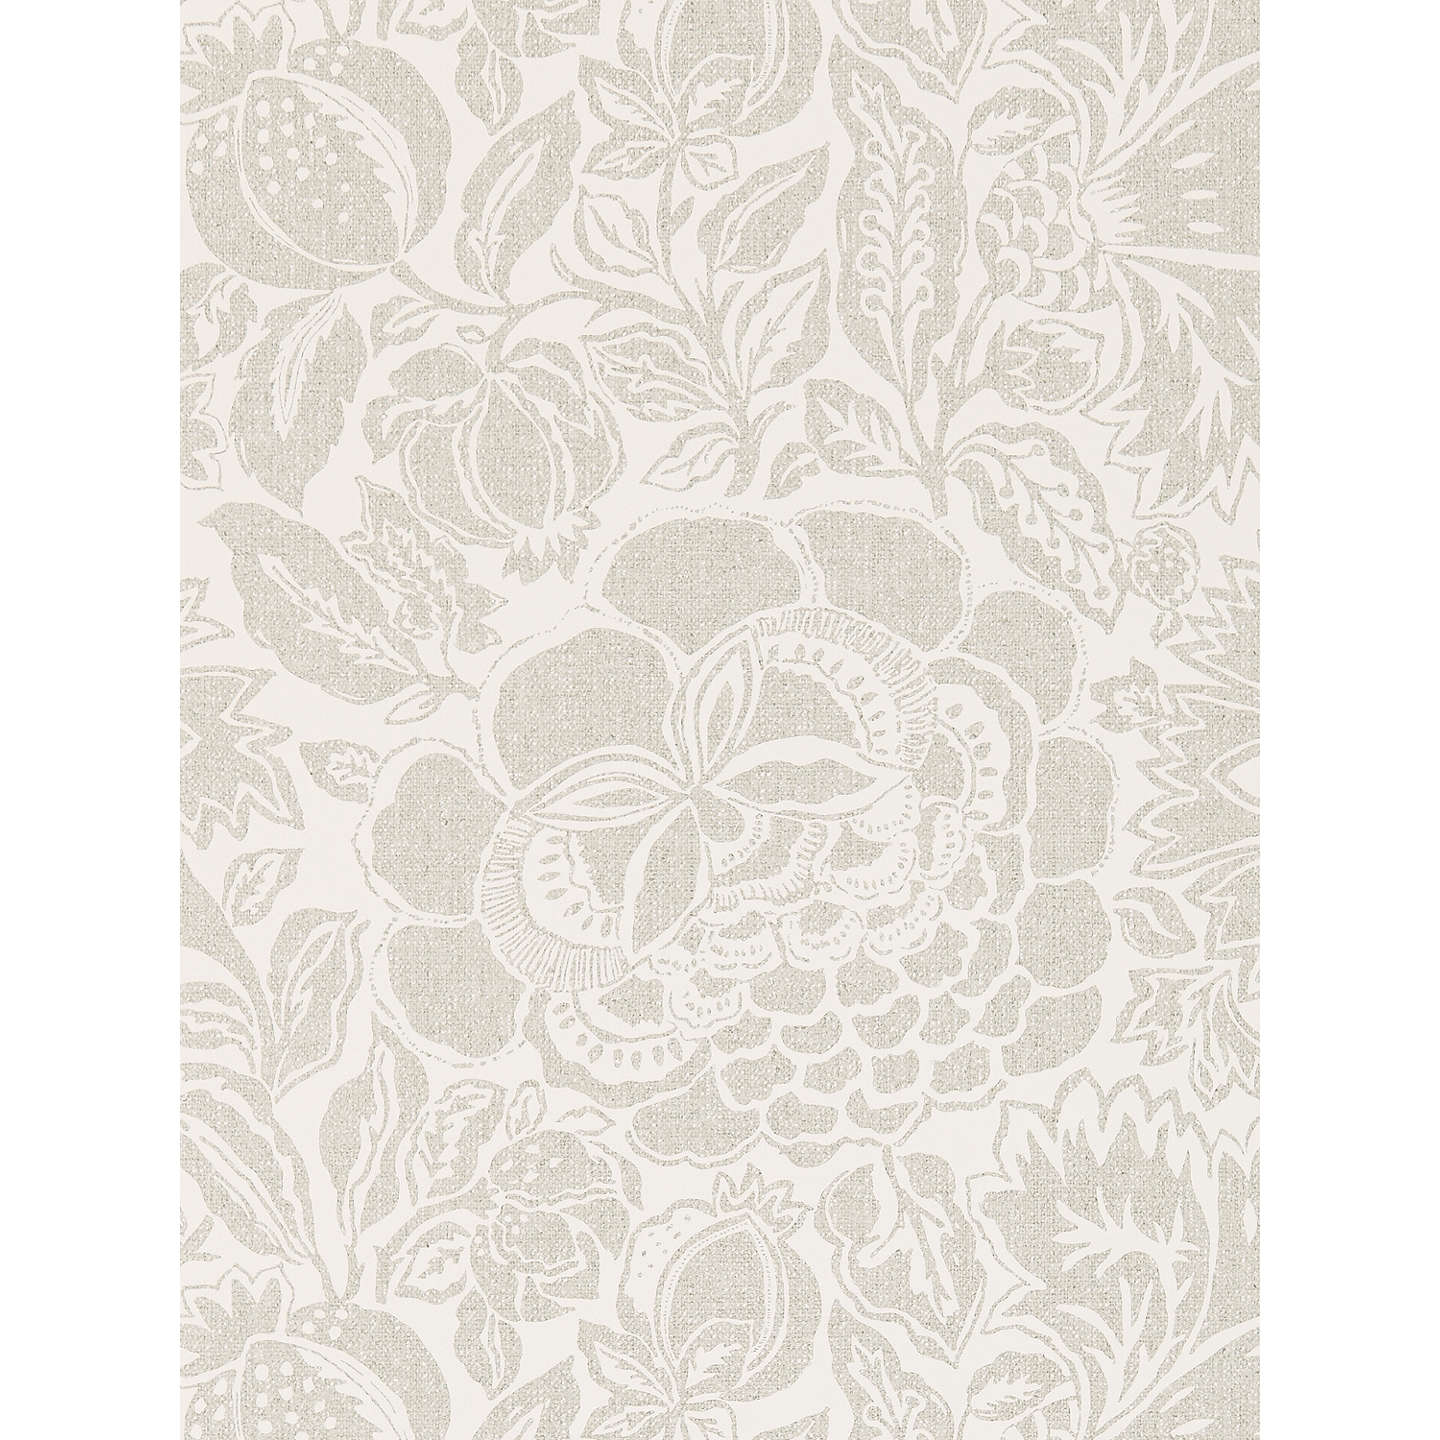 BuySanderson Poppy Damask Wallpaper, Silver, DSOH215428 Online at johnlewis.com